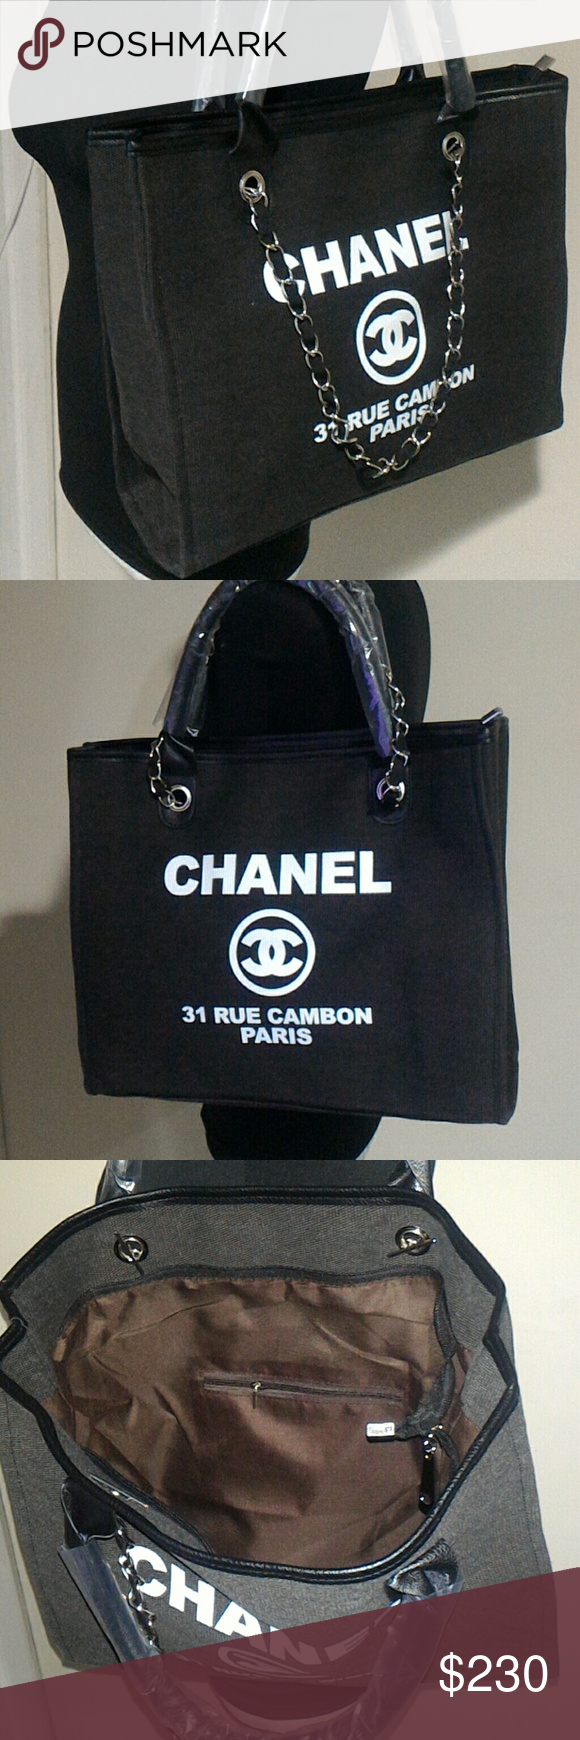 f92ff1f9684 Authentic Chanel VIP Gift Canvas Tote Canvas tote with leather and chain  strap. No cards or codes. chanel Bags Totes